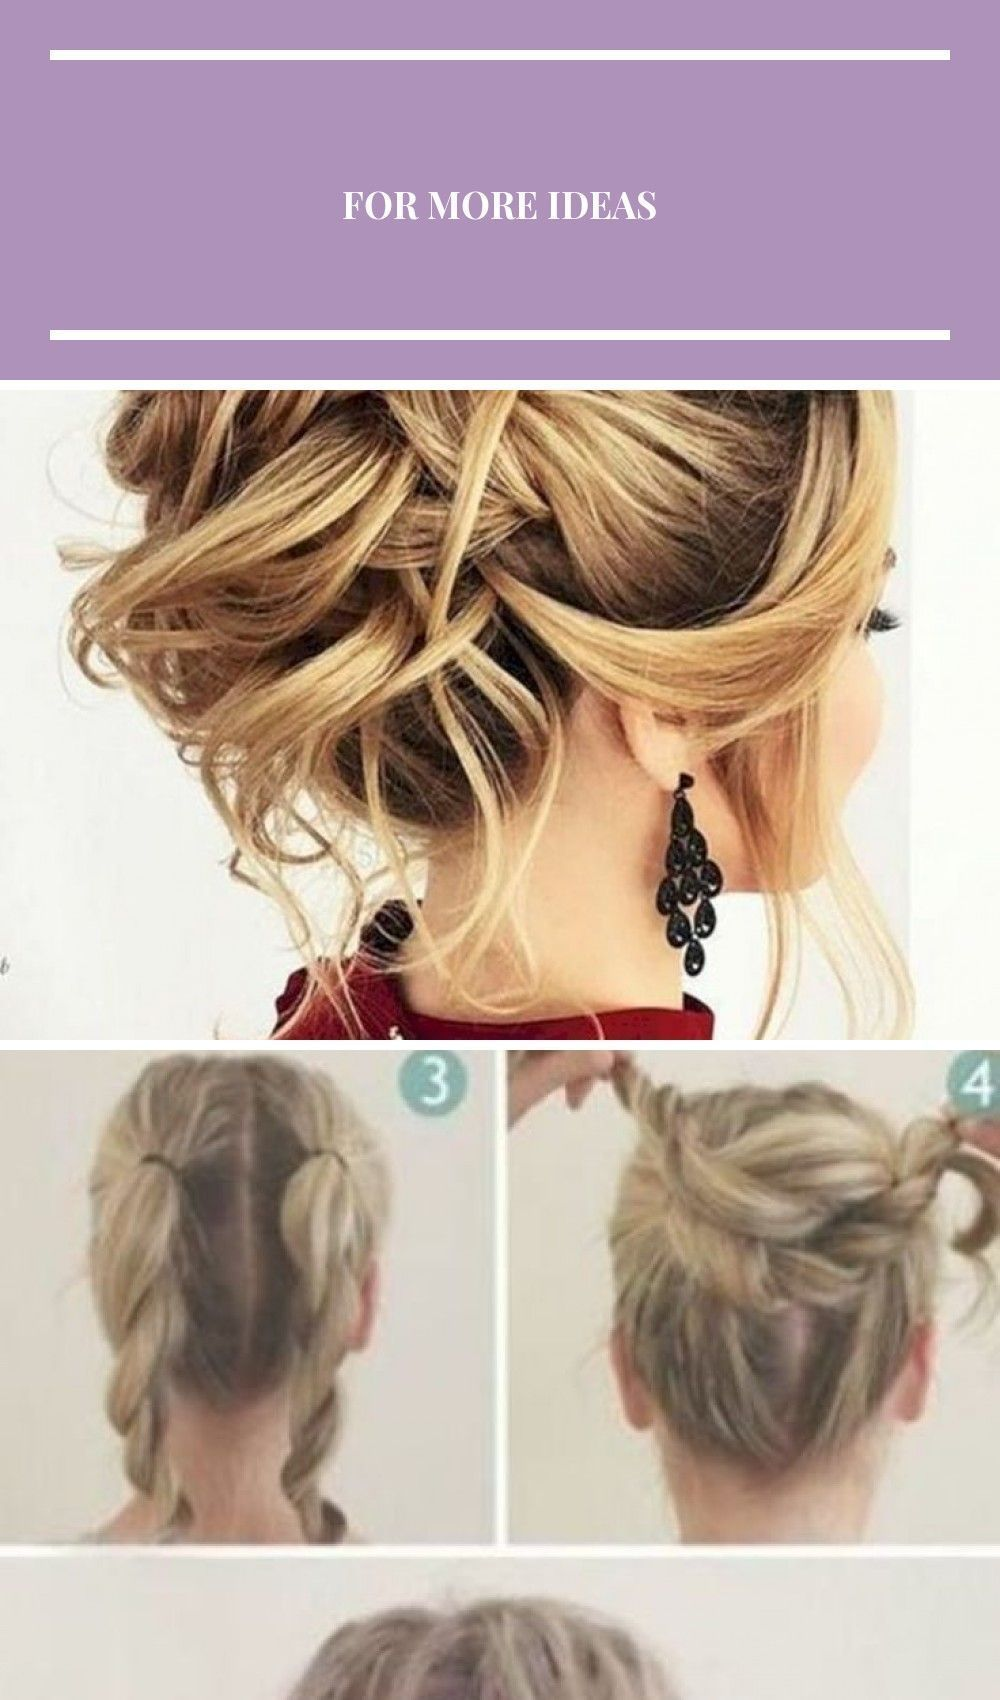 Hairstyles For Attending A Summer Wedding